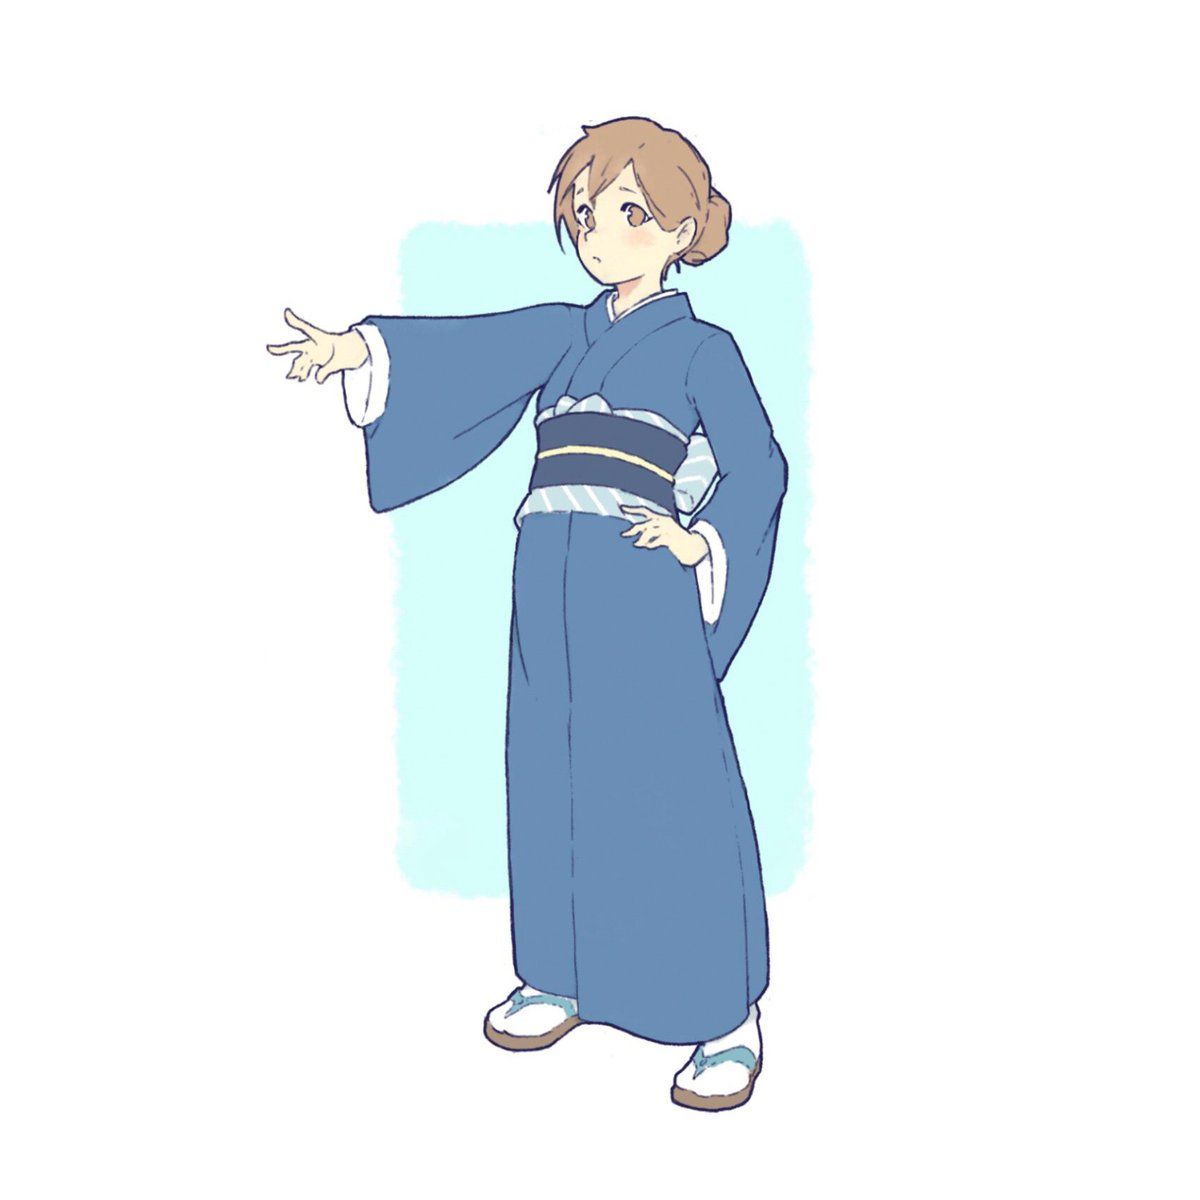 Umber On Twitter Going Full Anime Drew This One In A Kimono